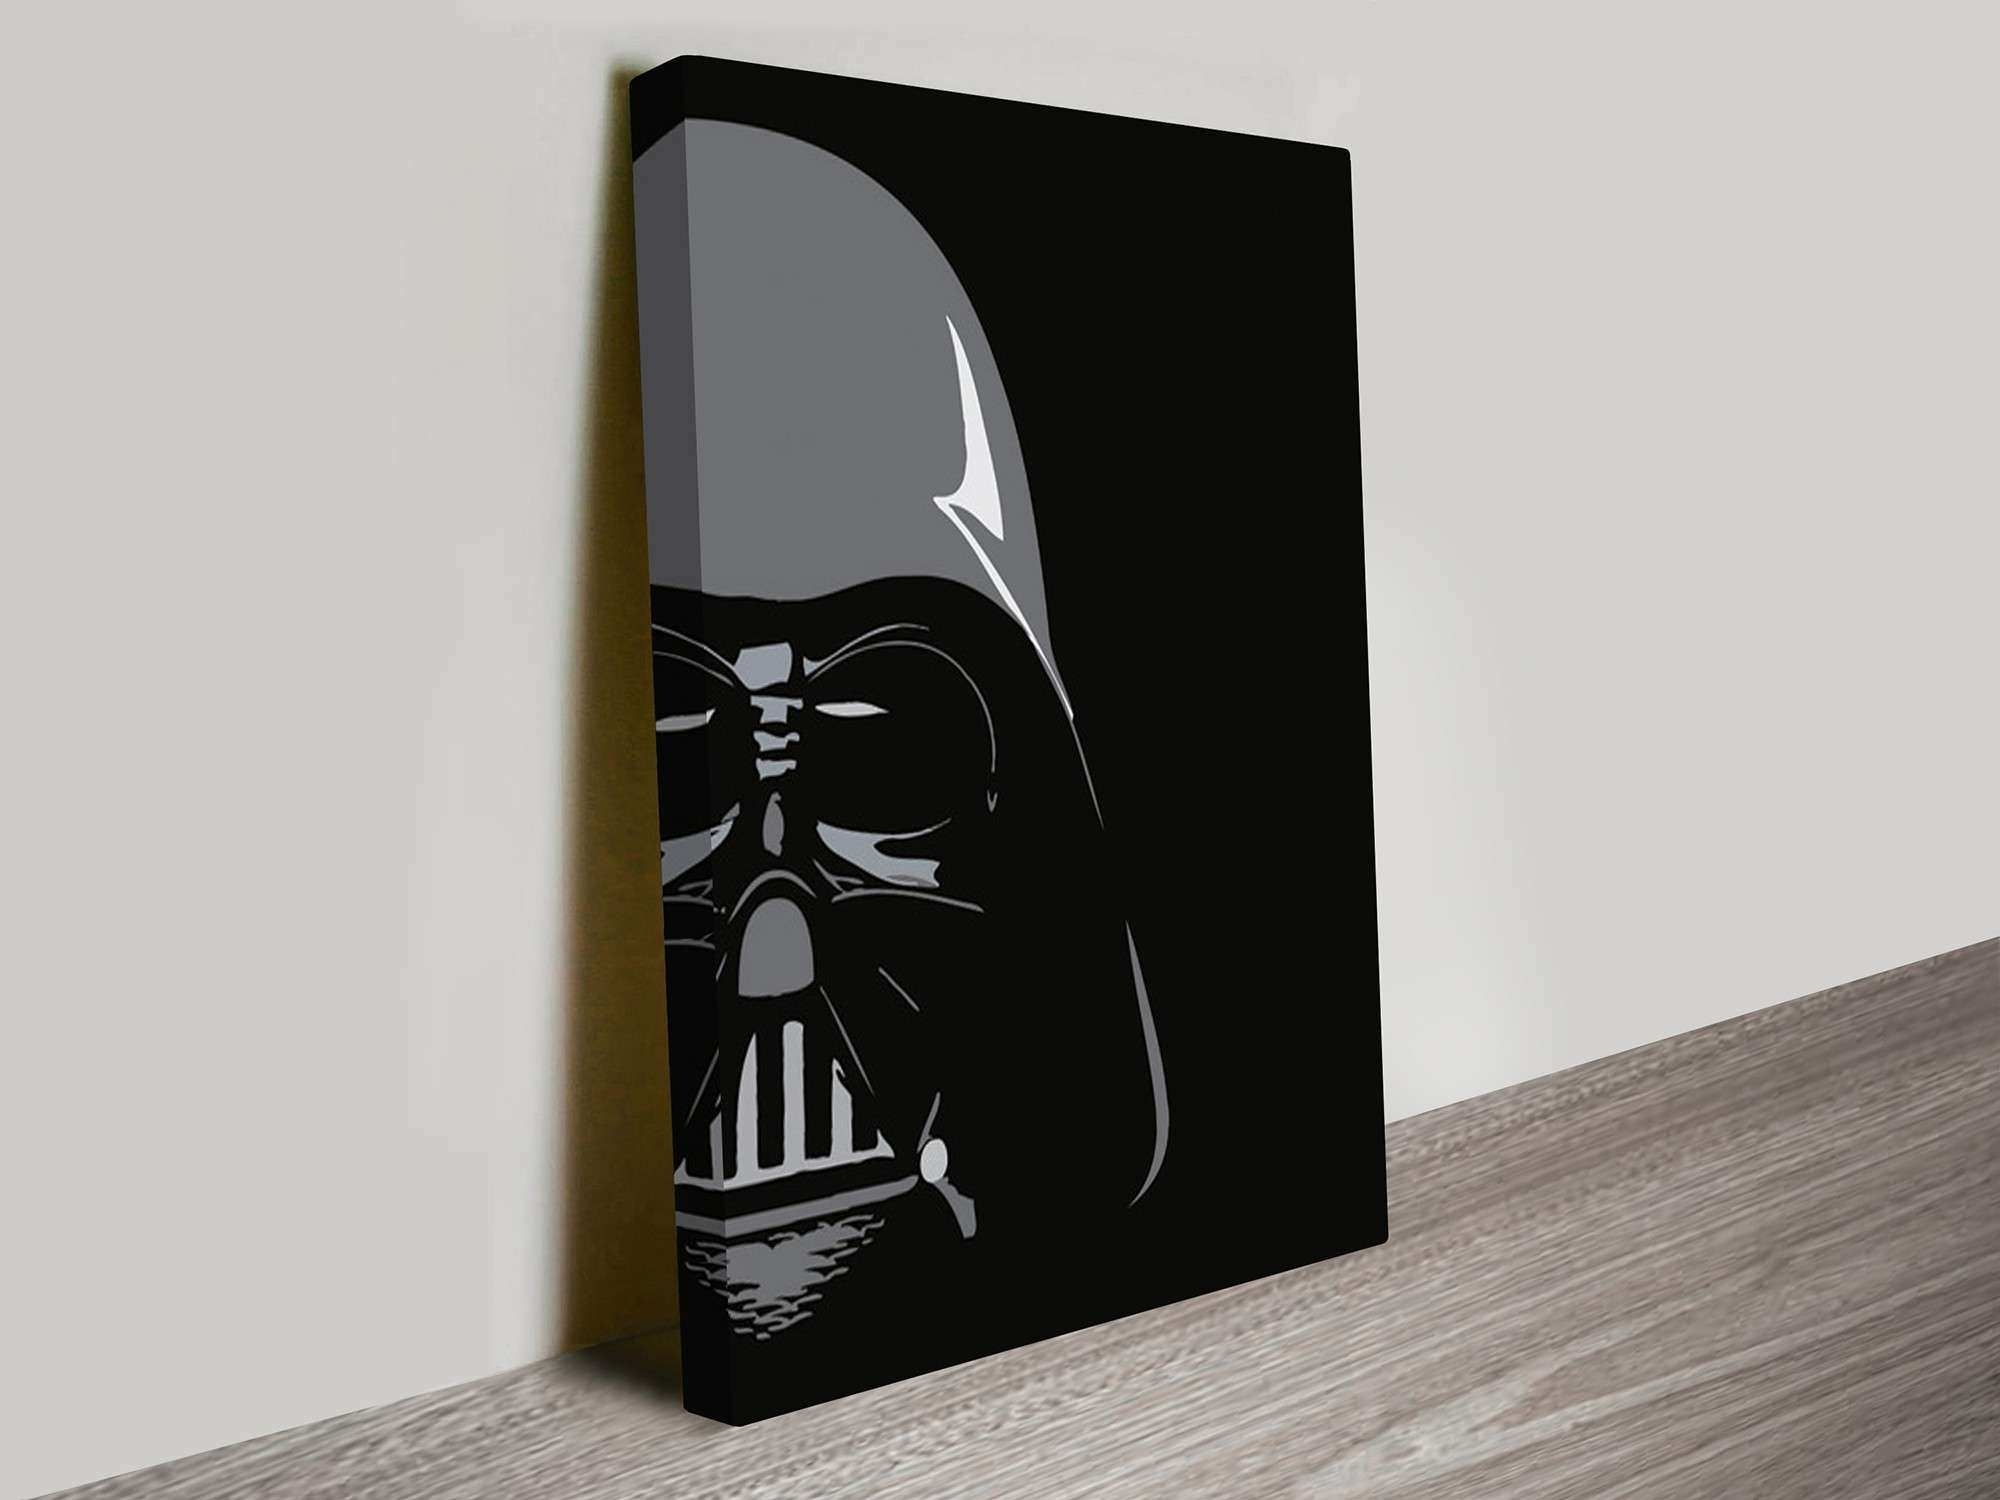 Well Known Darth Vader Wall Art Throughout Star Wars Canvas Wall Art Unique Darth Vader Pop Art Canvas Prints (Gallery 11 of 20)